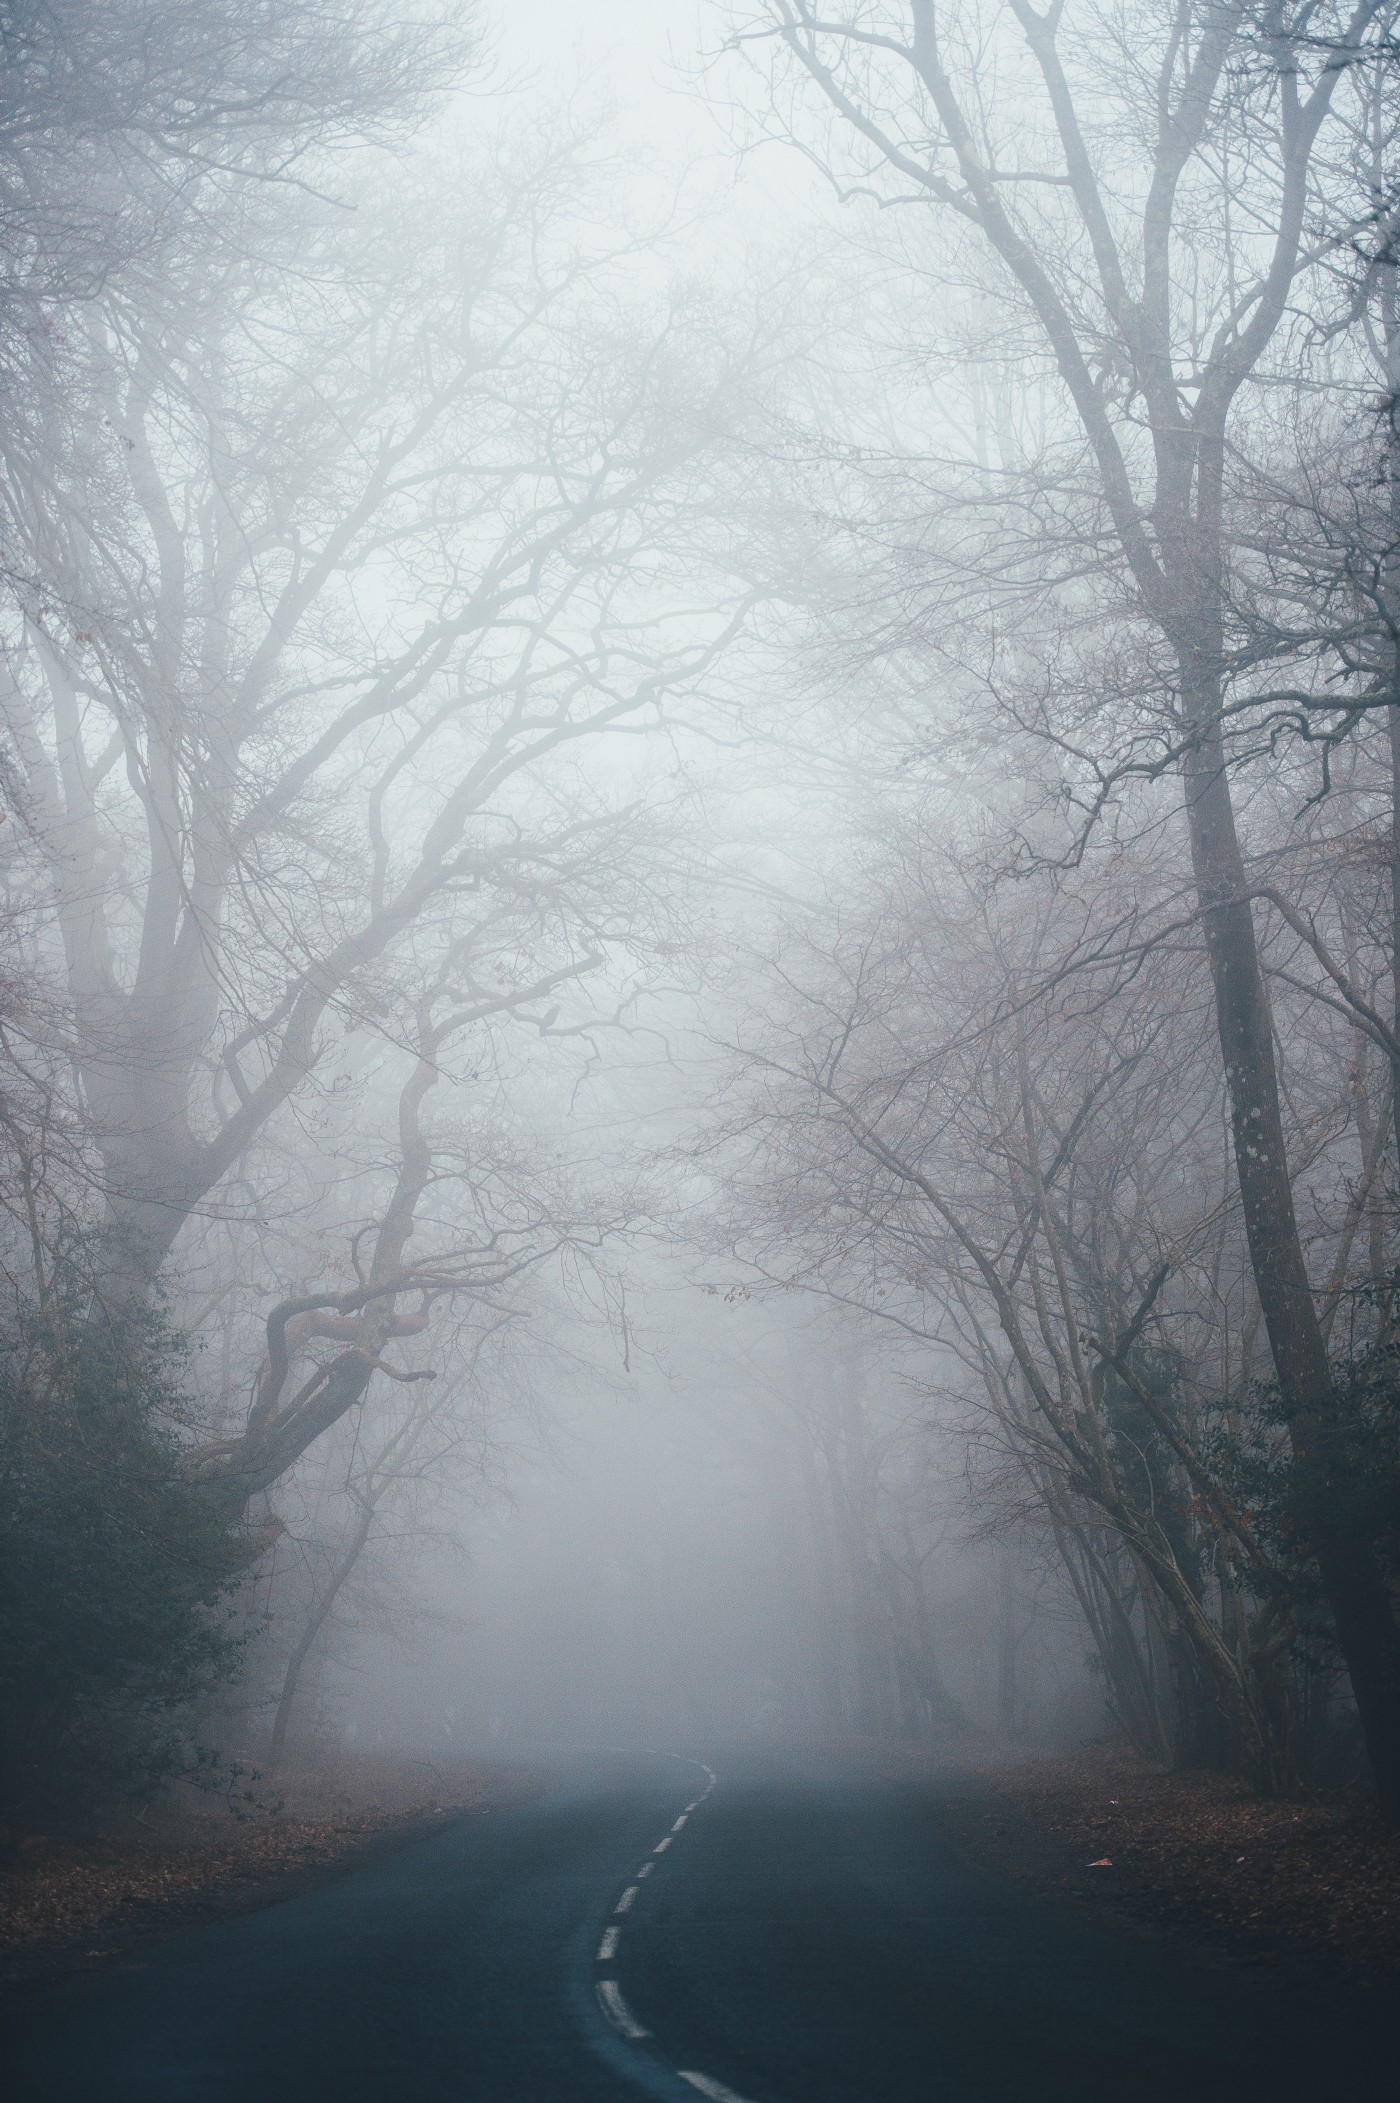 road disappearing into misty woods